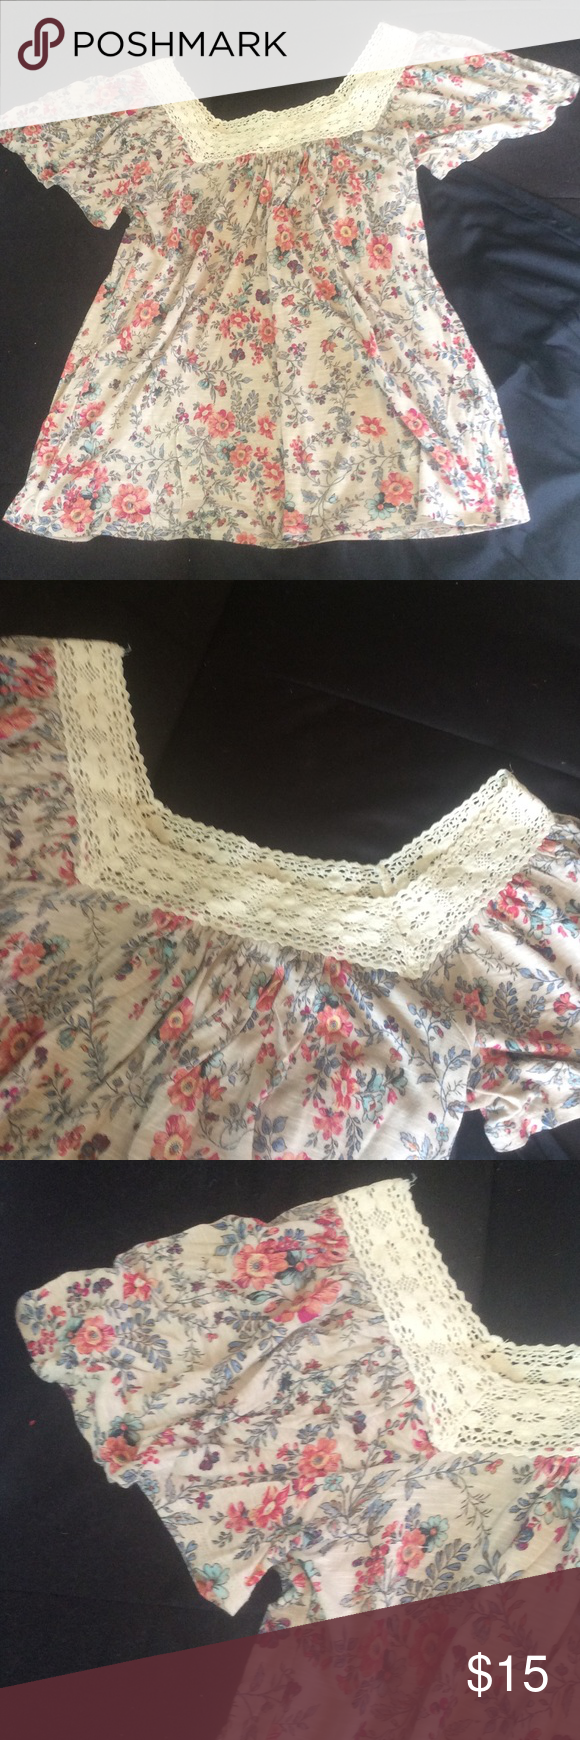 Beautiful floral tan top A heathered tan with a soft floral pattern throughout. A square neck embroidered lace. Short bell sleeves. Excellent condition! No signs of wear, snags or stains. Bundle for further discounts! Forever 21 Tops